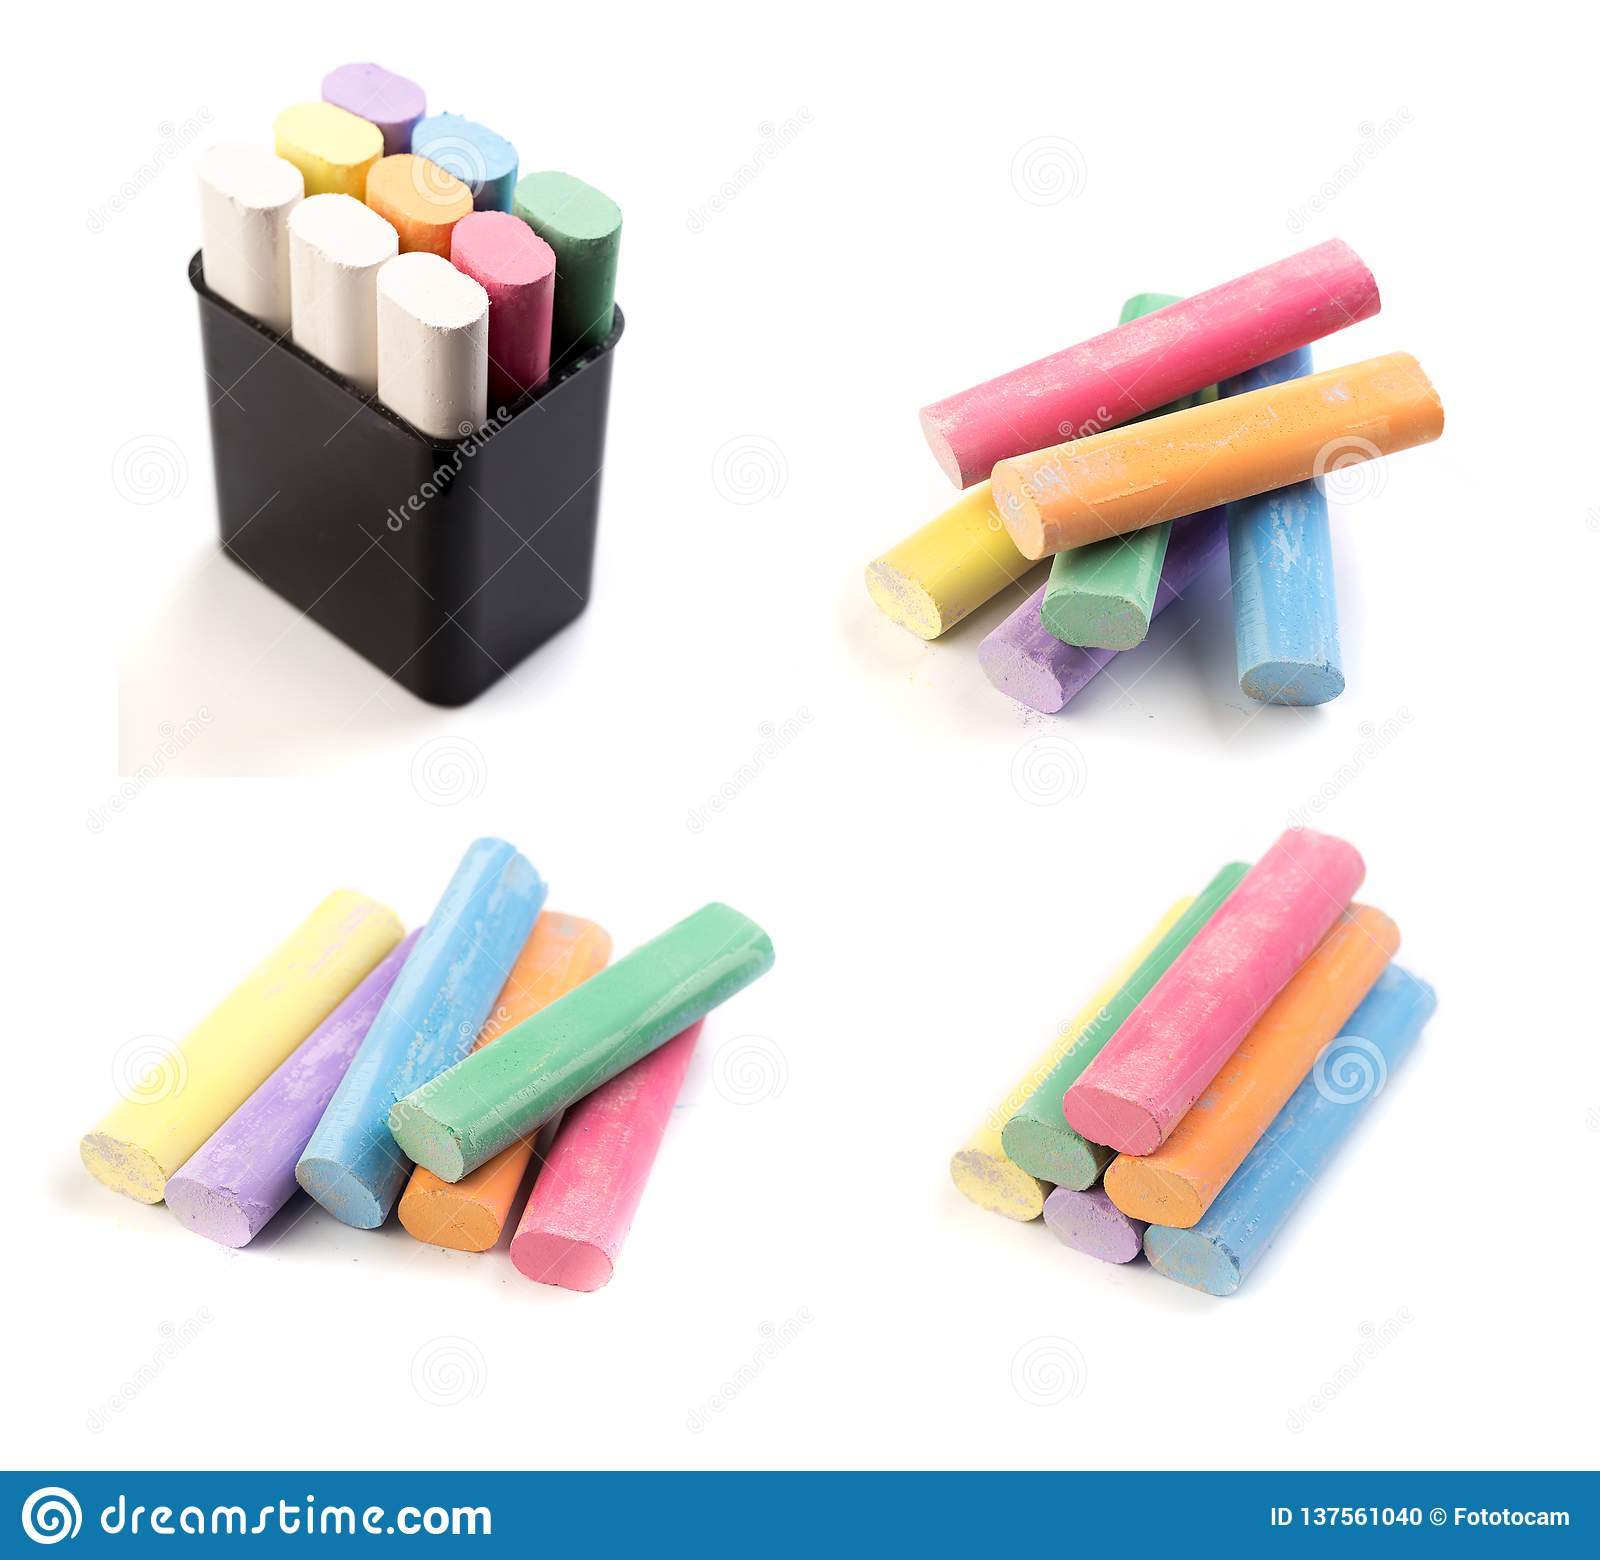 Coloured chalk for drawing on a white background - Image